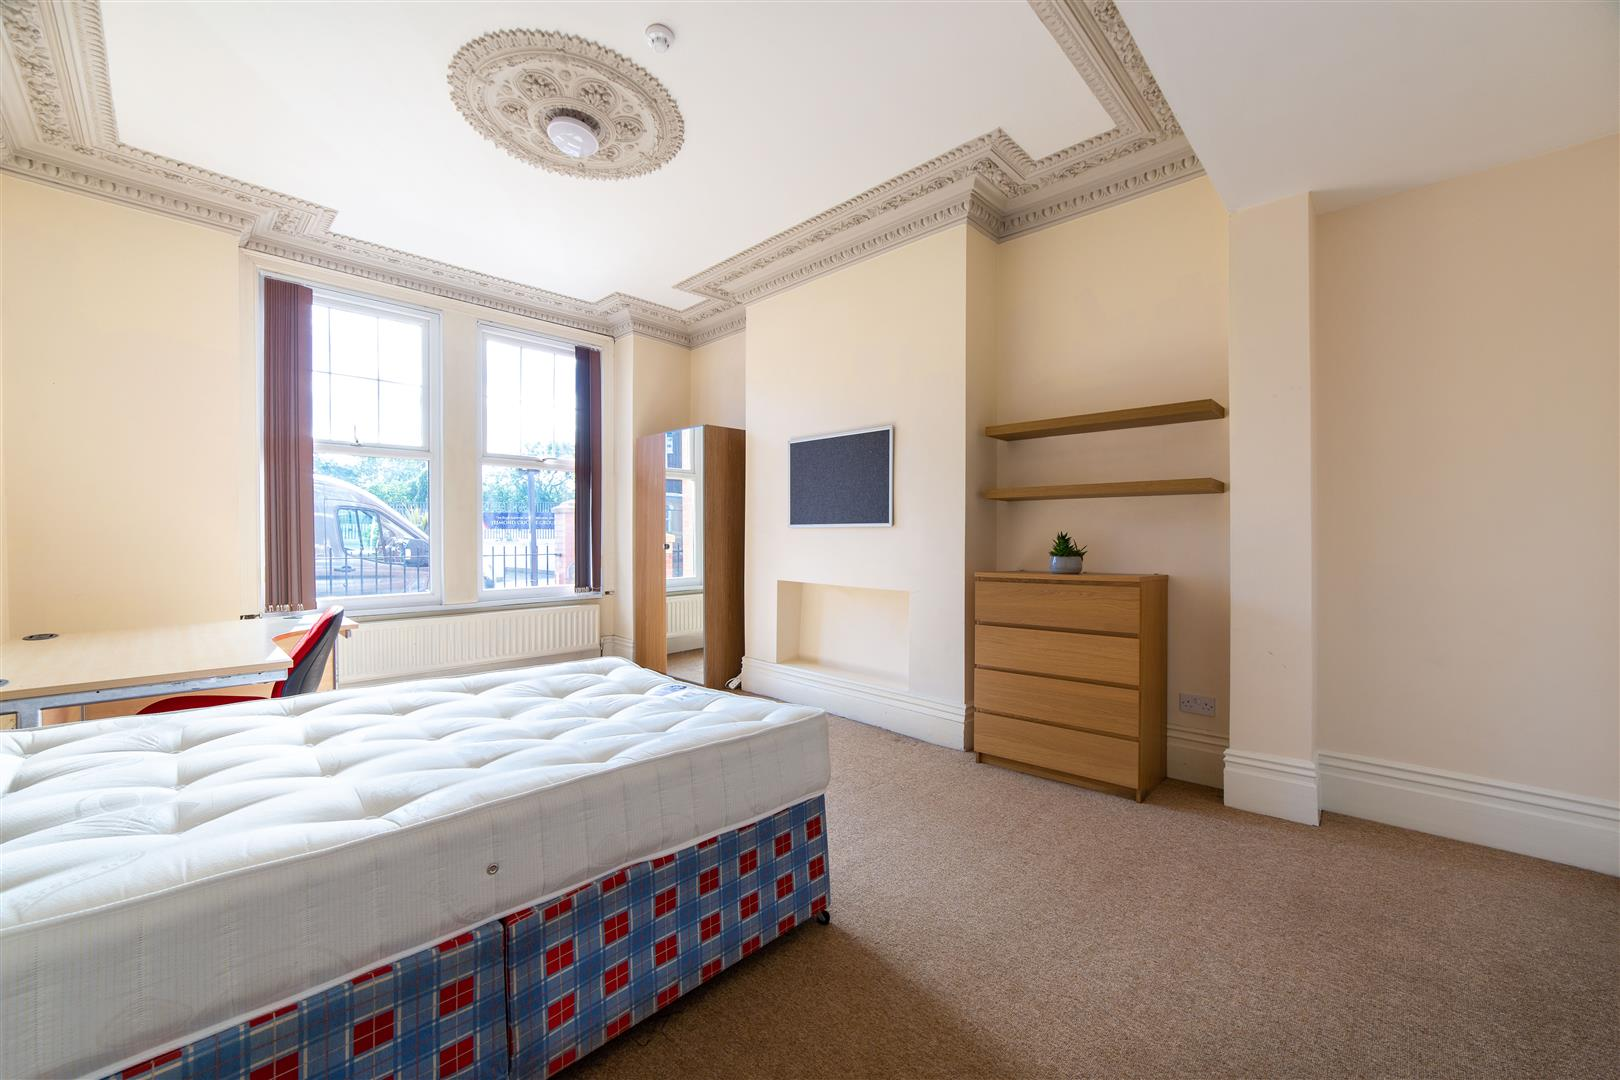 8 bed terraced house to rent in Newcastle Upon Tyne, NE2 1JS  - Property Image 6